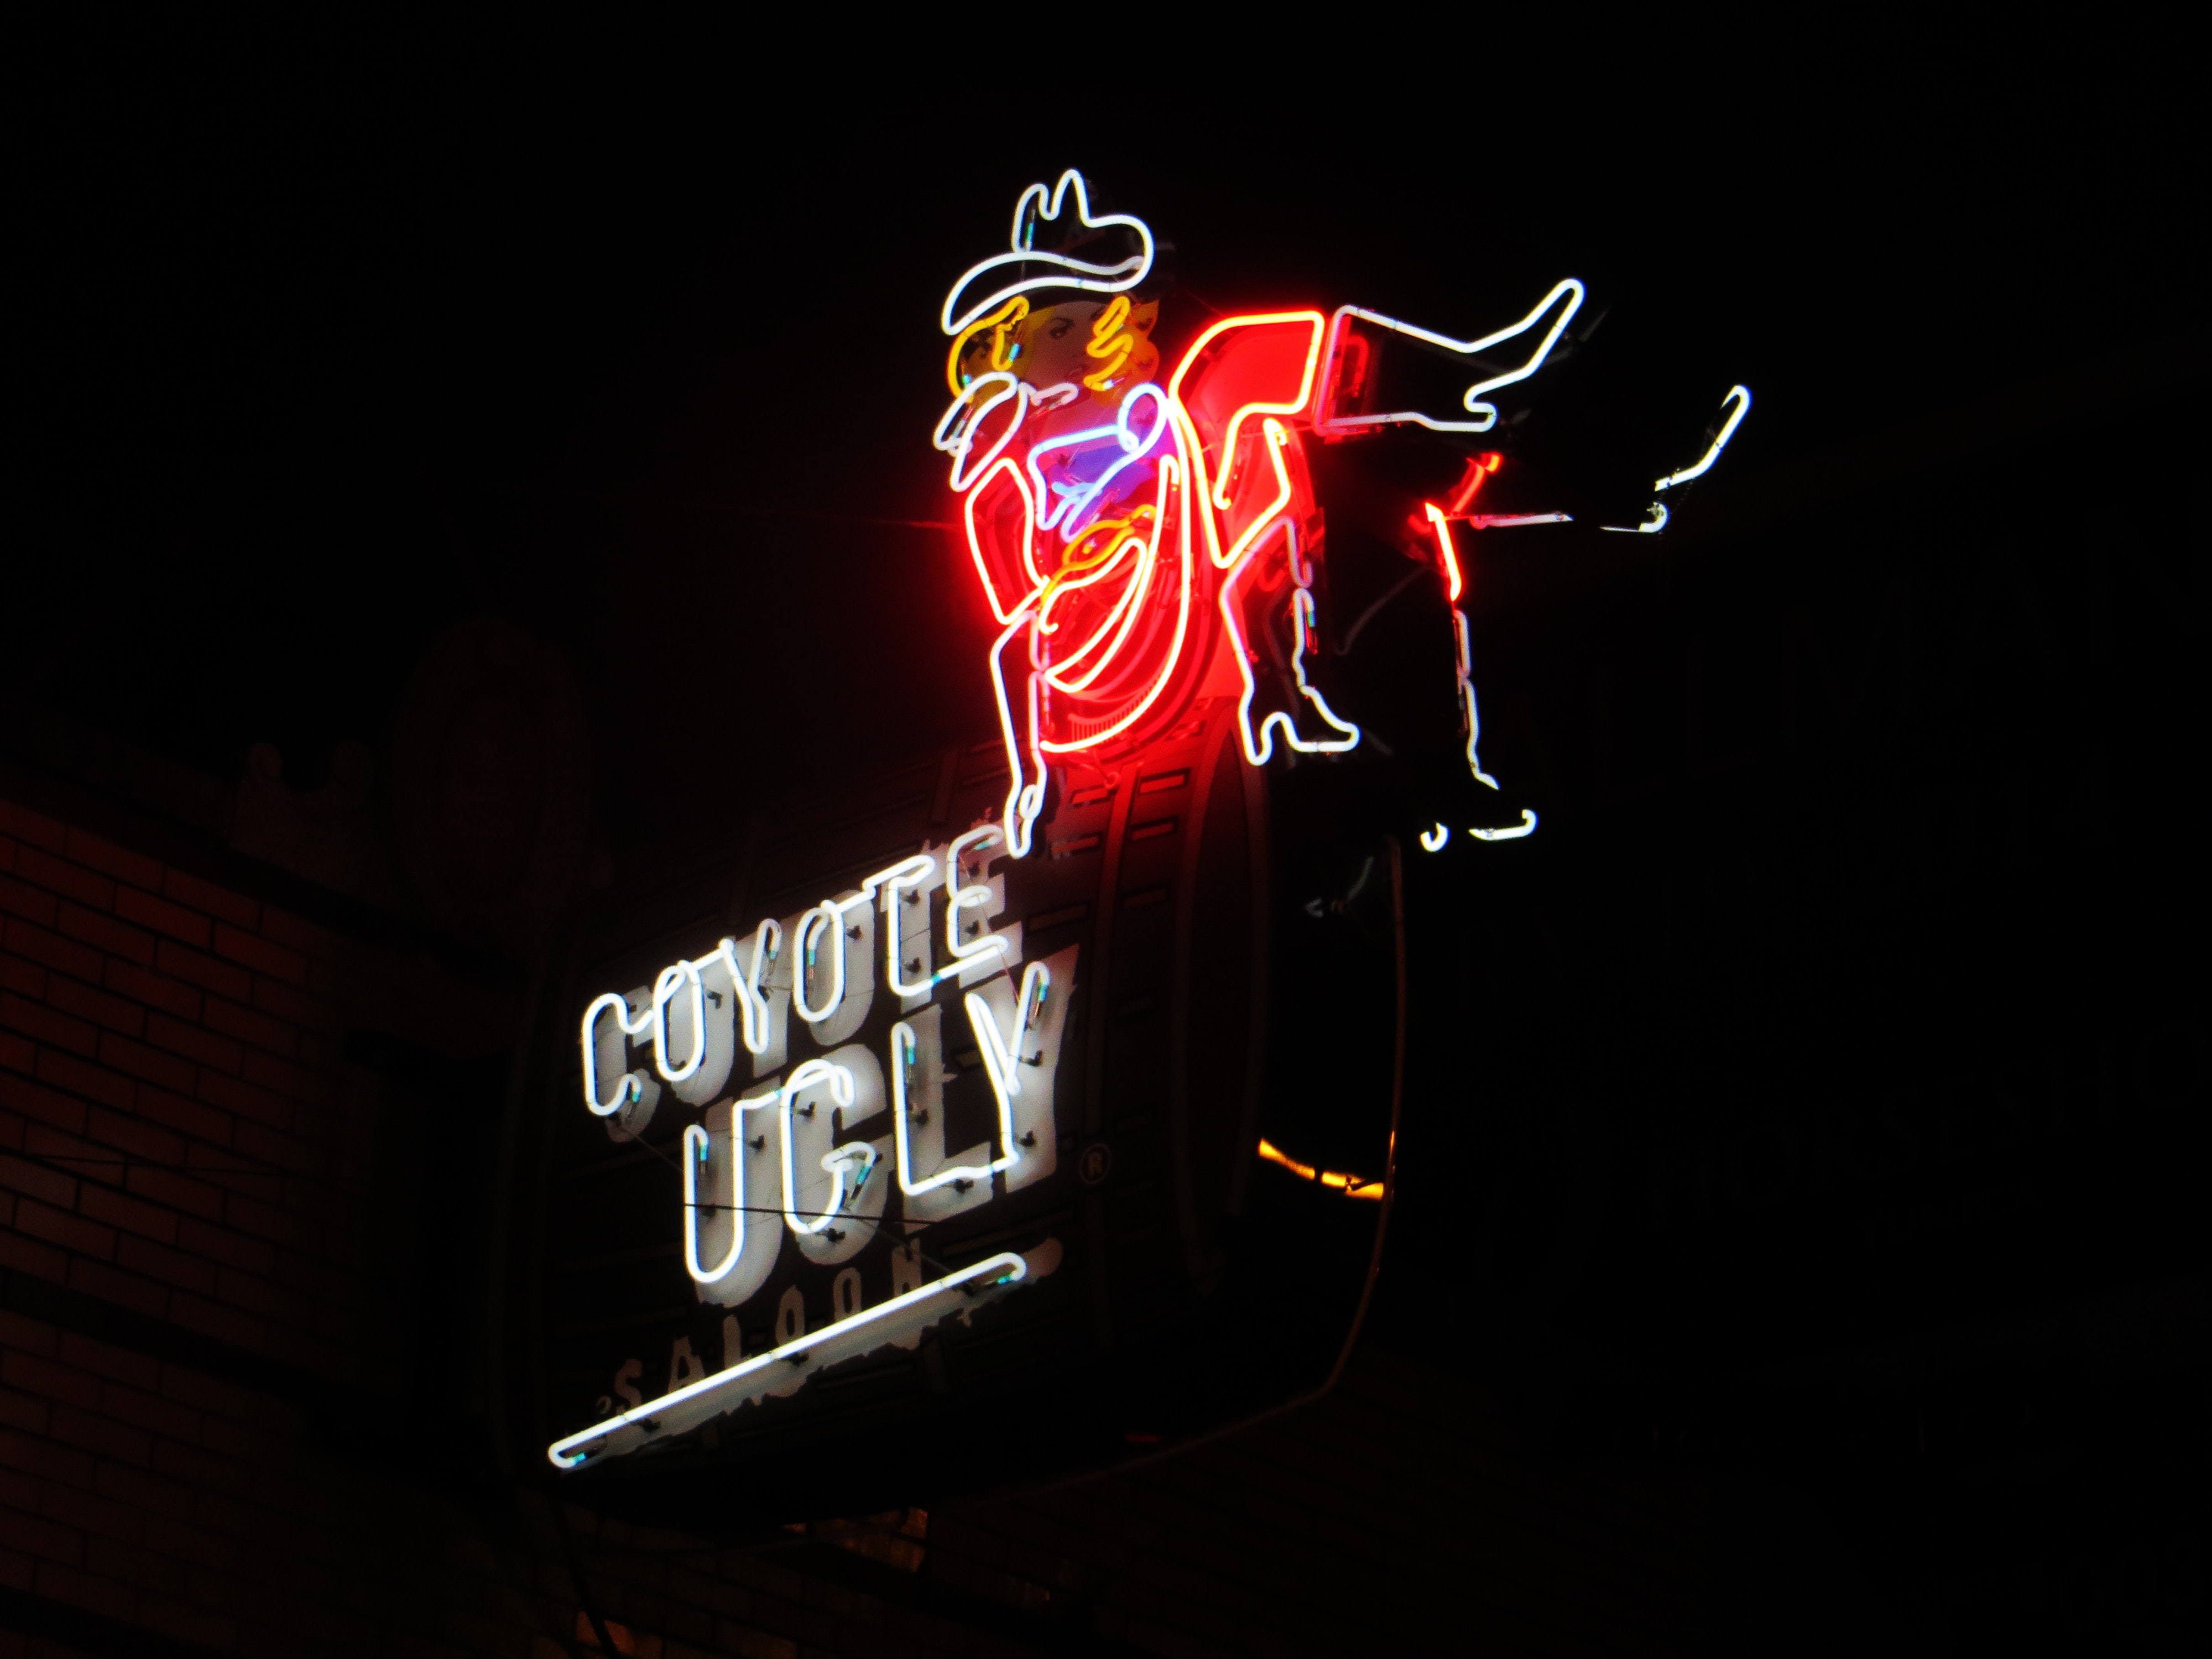 Coyote ugly neon signage photo